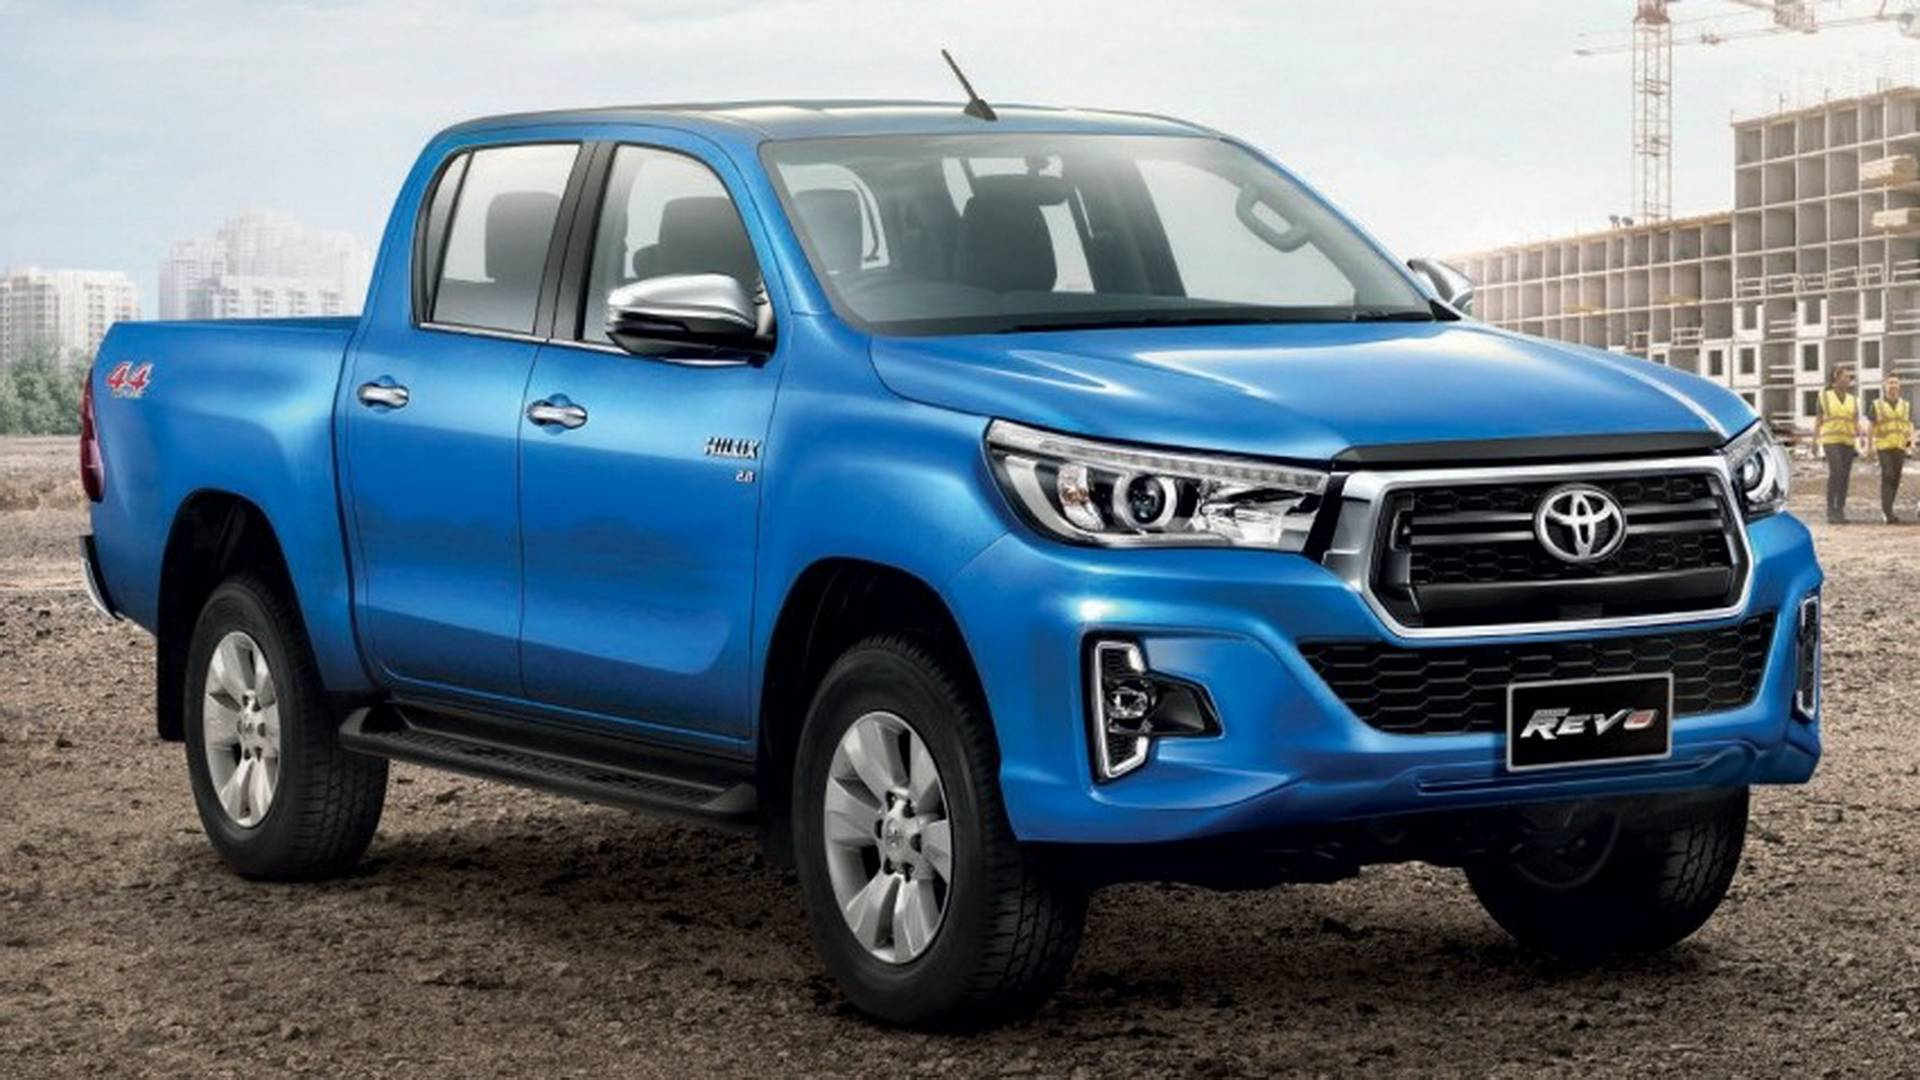 toyota hilux 2018 model future cars release date. Black Bedroom Furniture Sets. Home Design Ideas